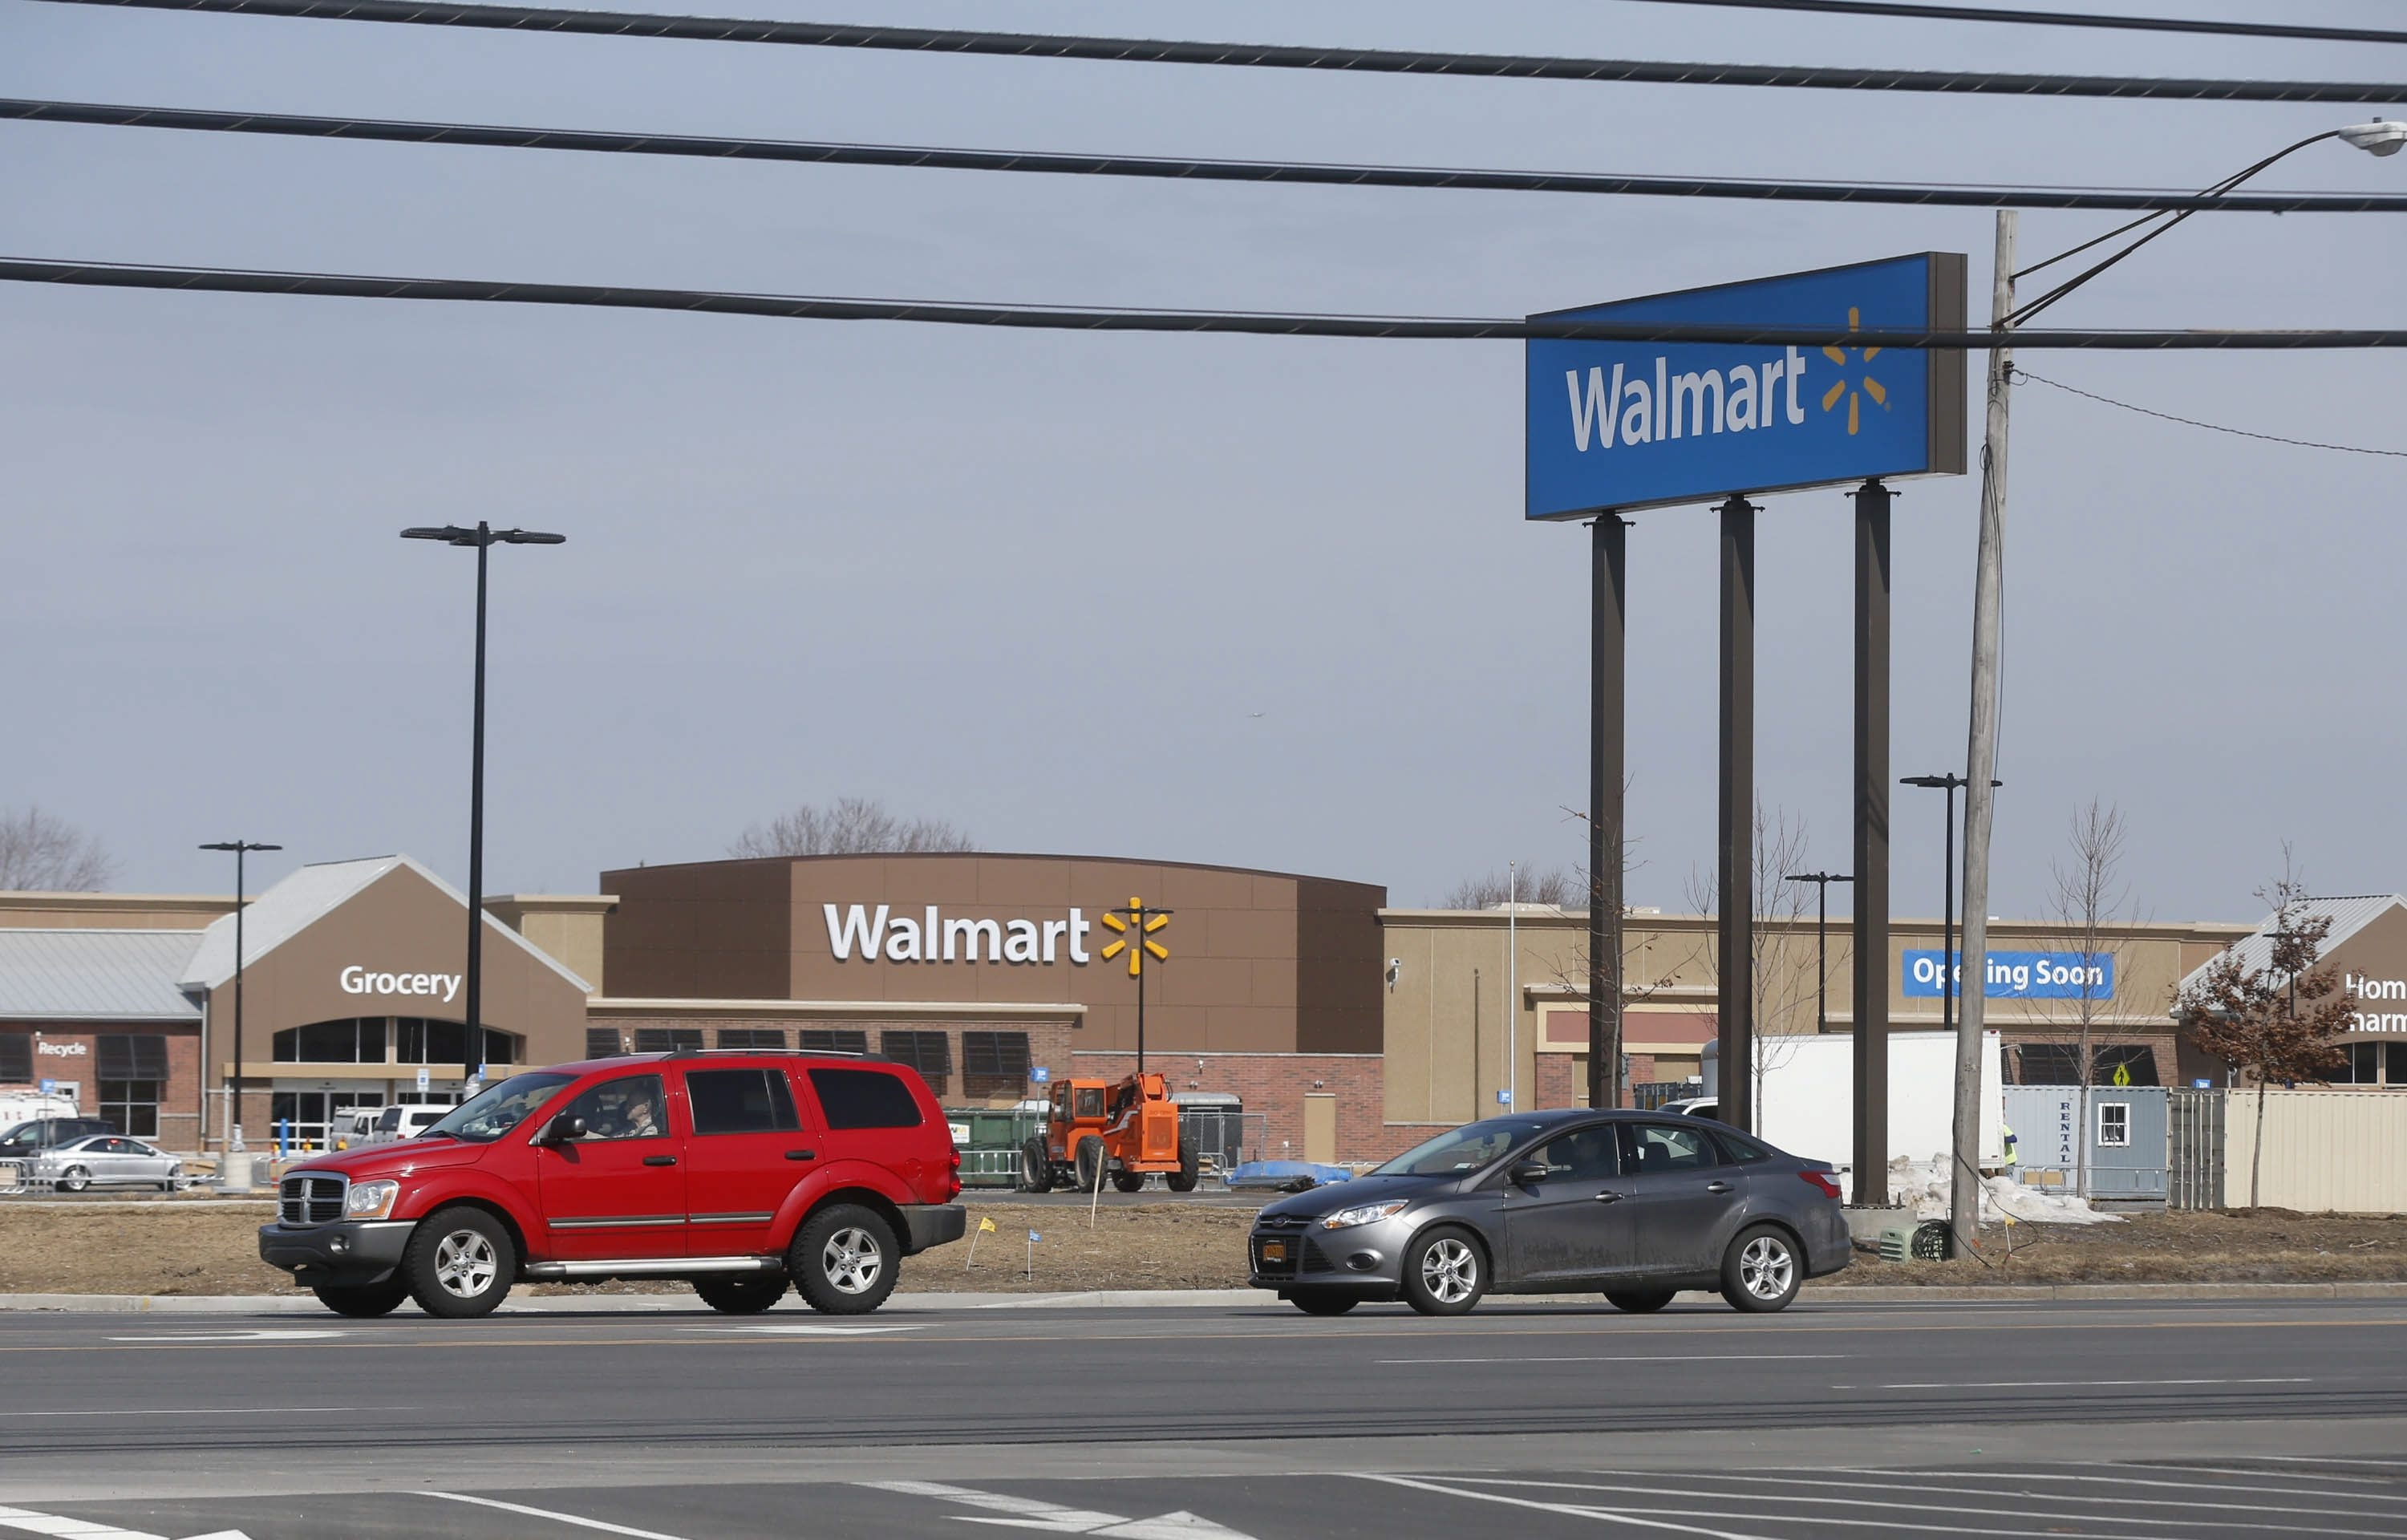 The Walmart location on Walden Avenue in Cheektowaga is getting a Metro Bus stop.